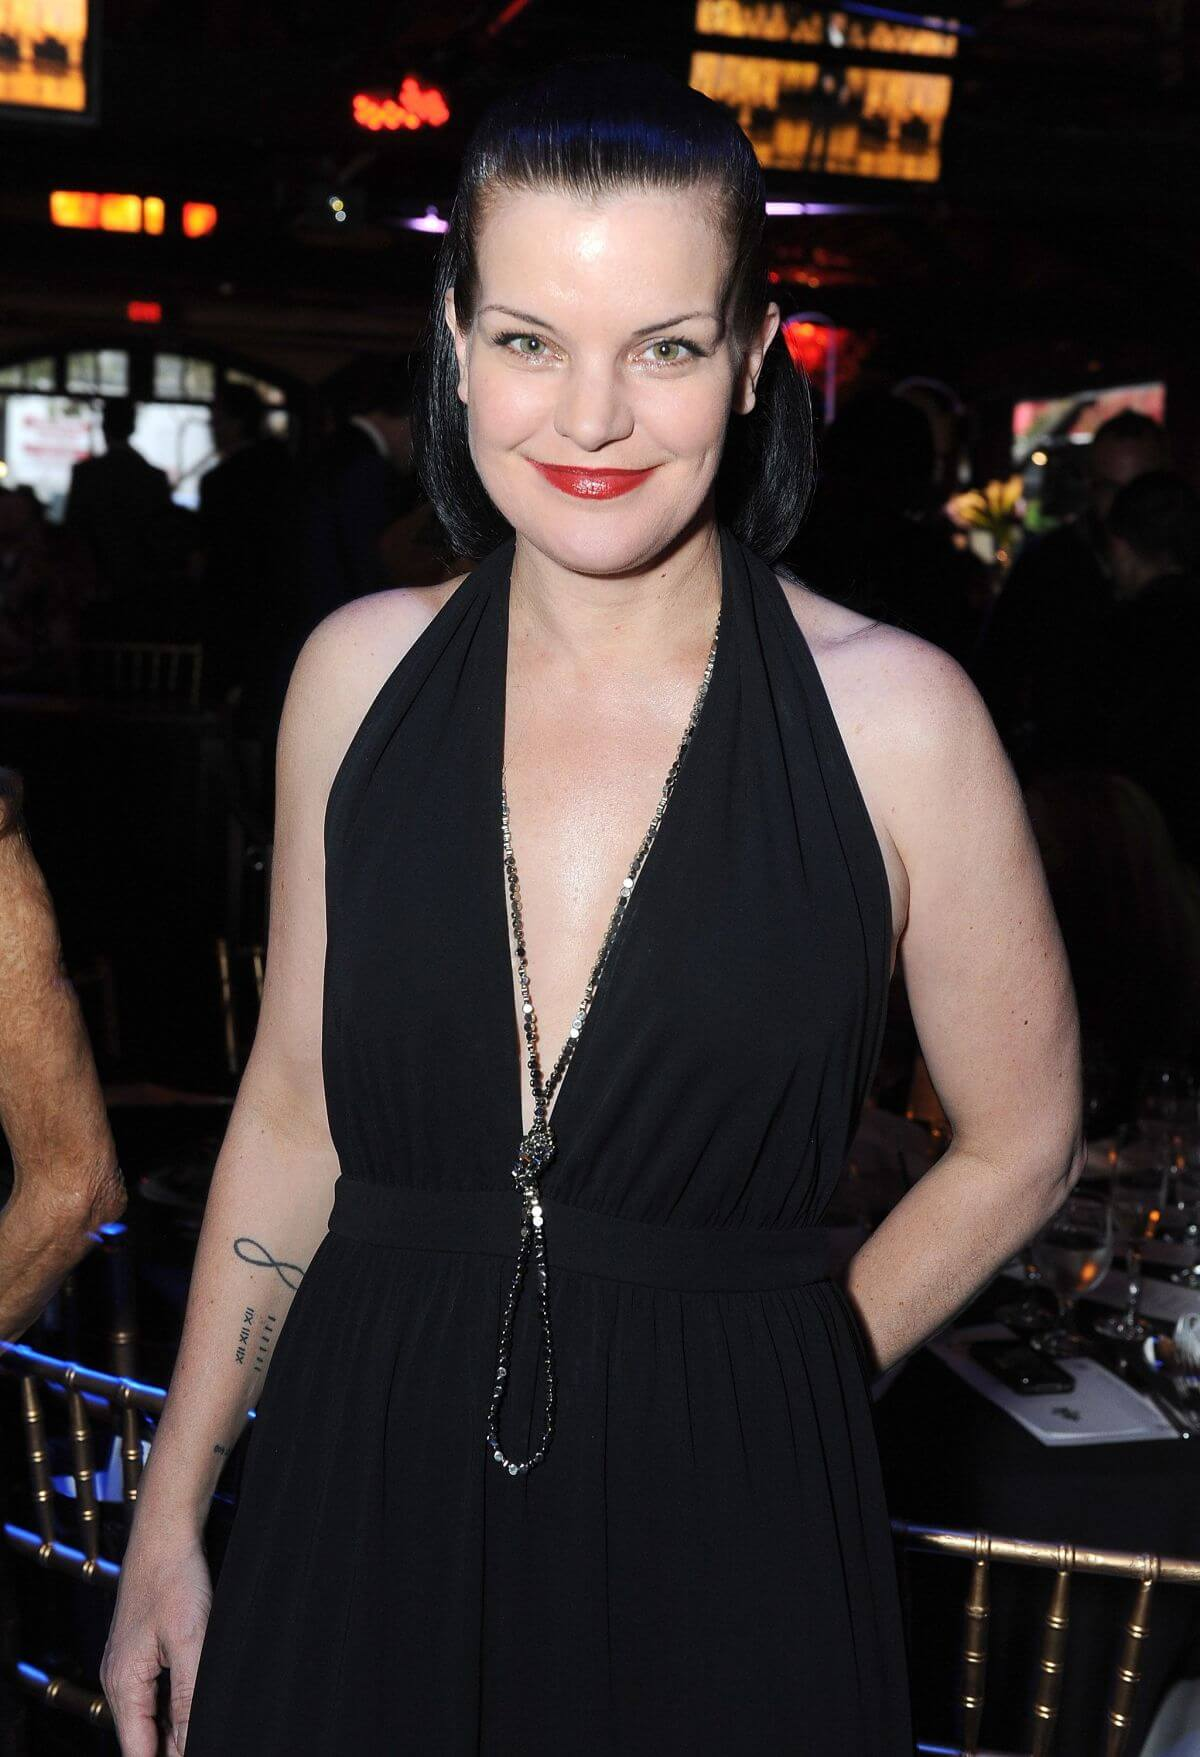 pauley perrette sexy cleavage